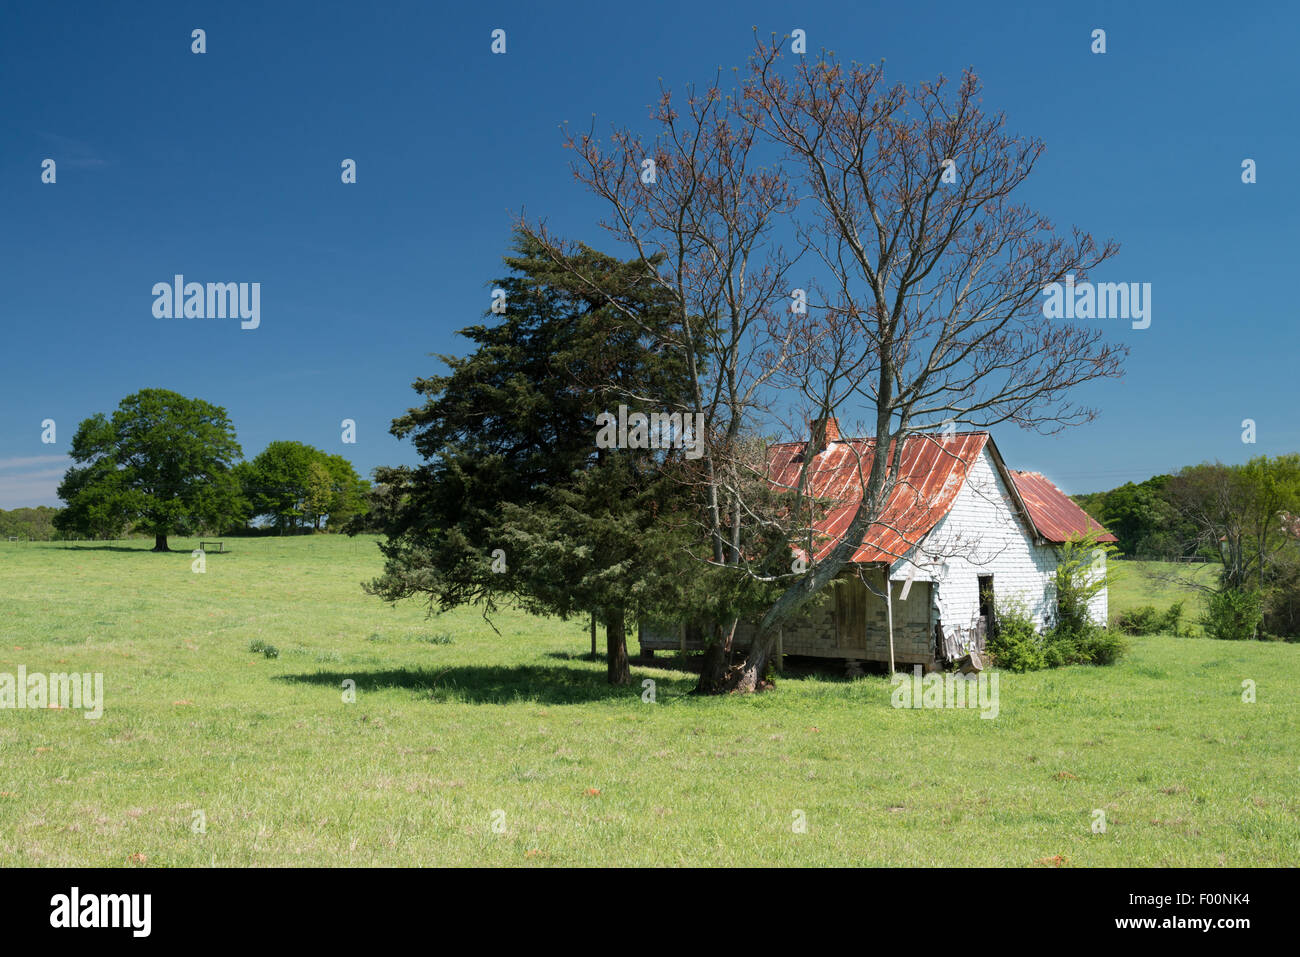 Old Farm house in Georgia, USA. - Stock Image